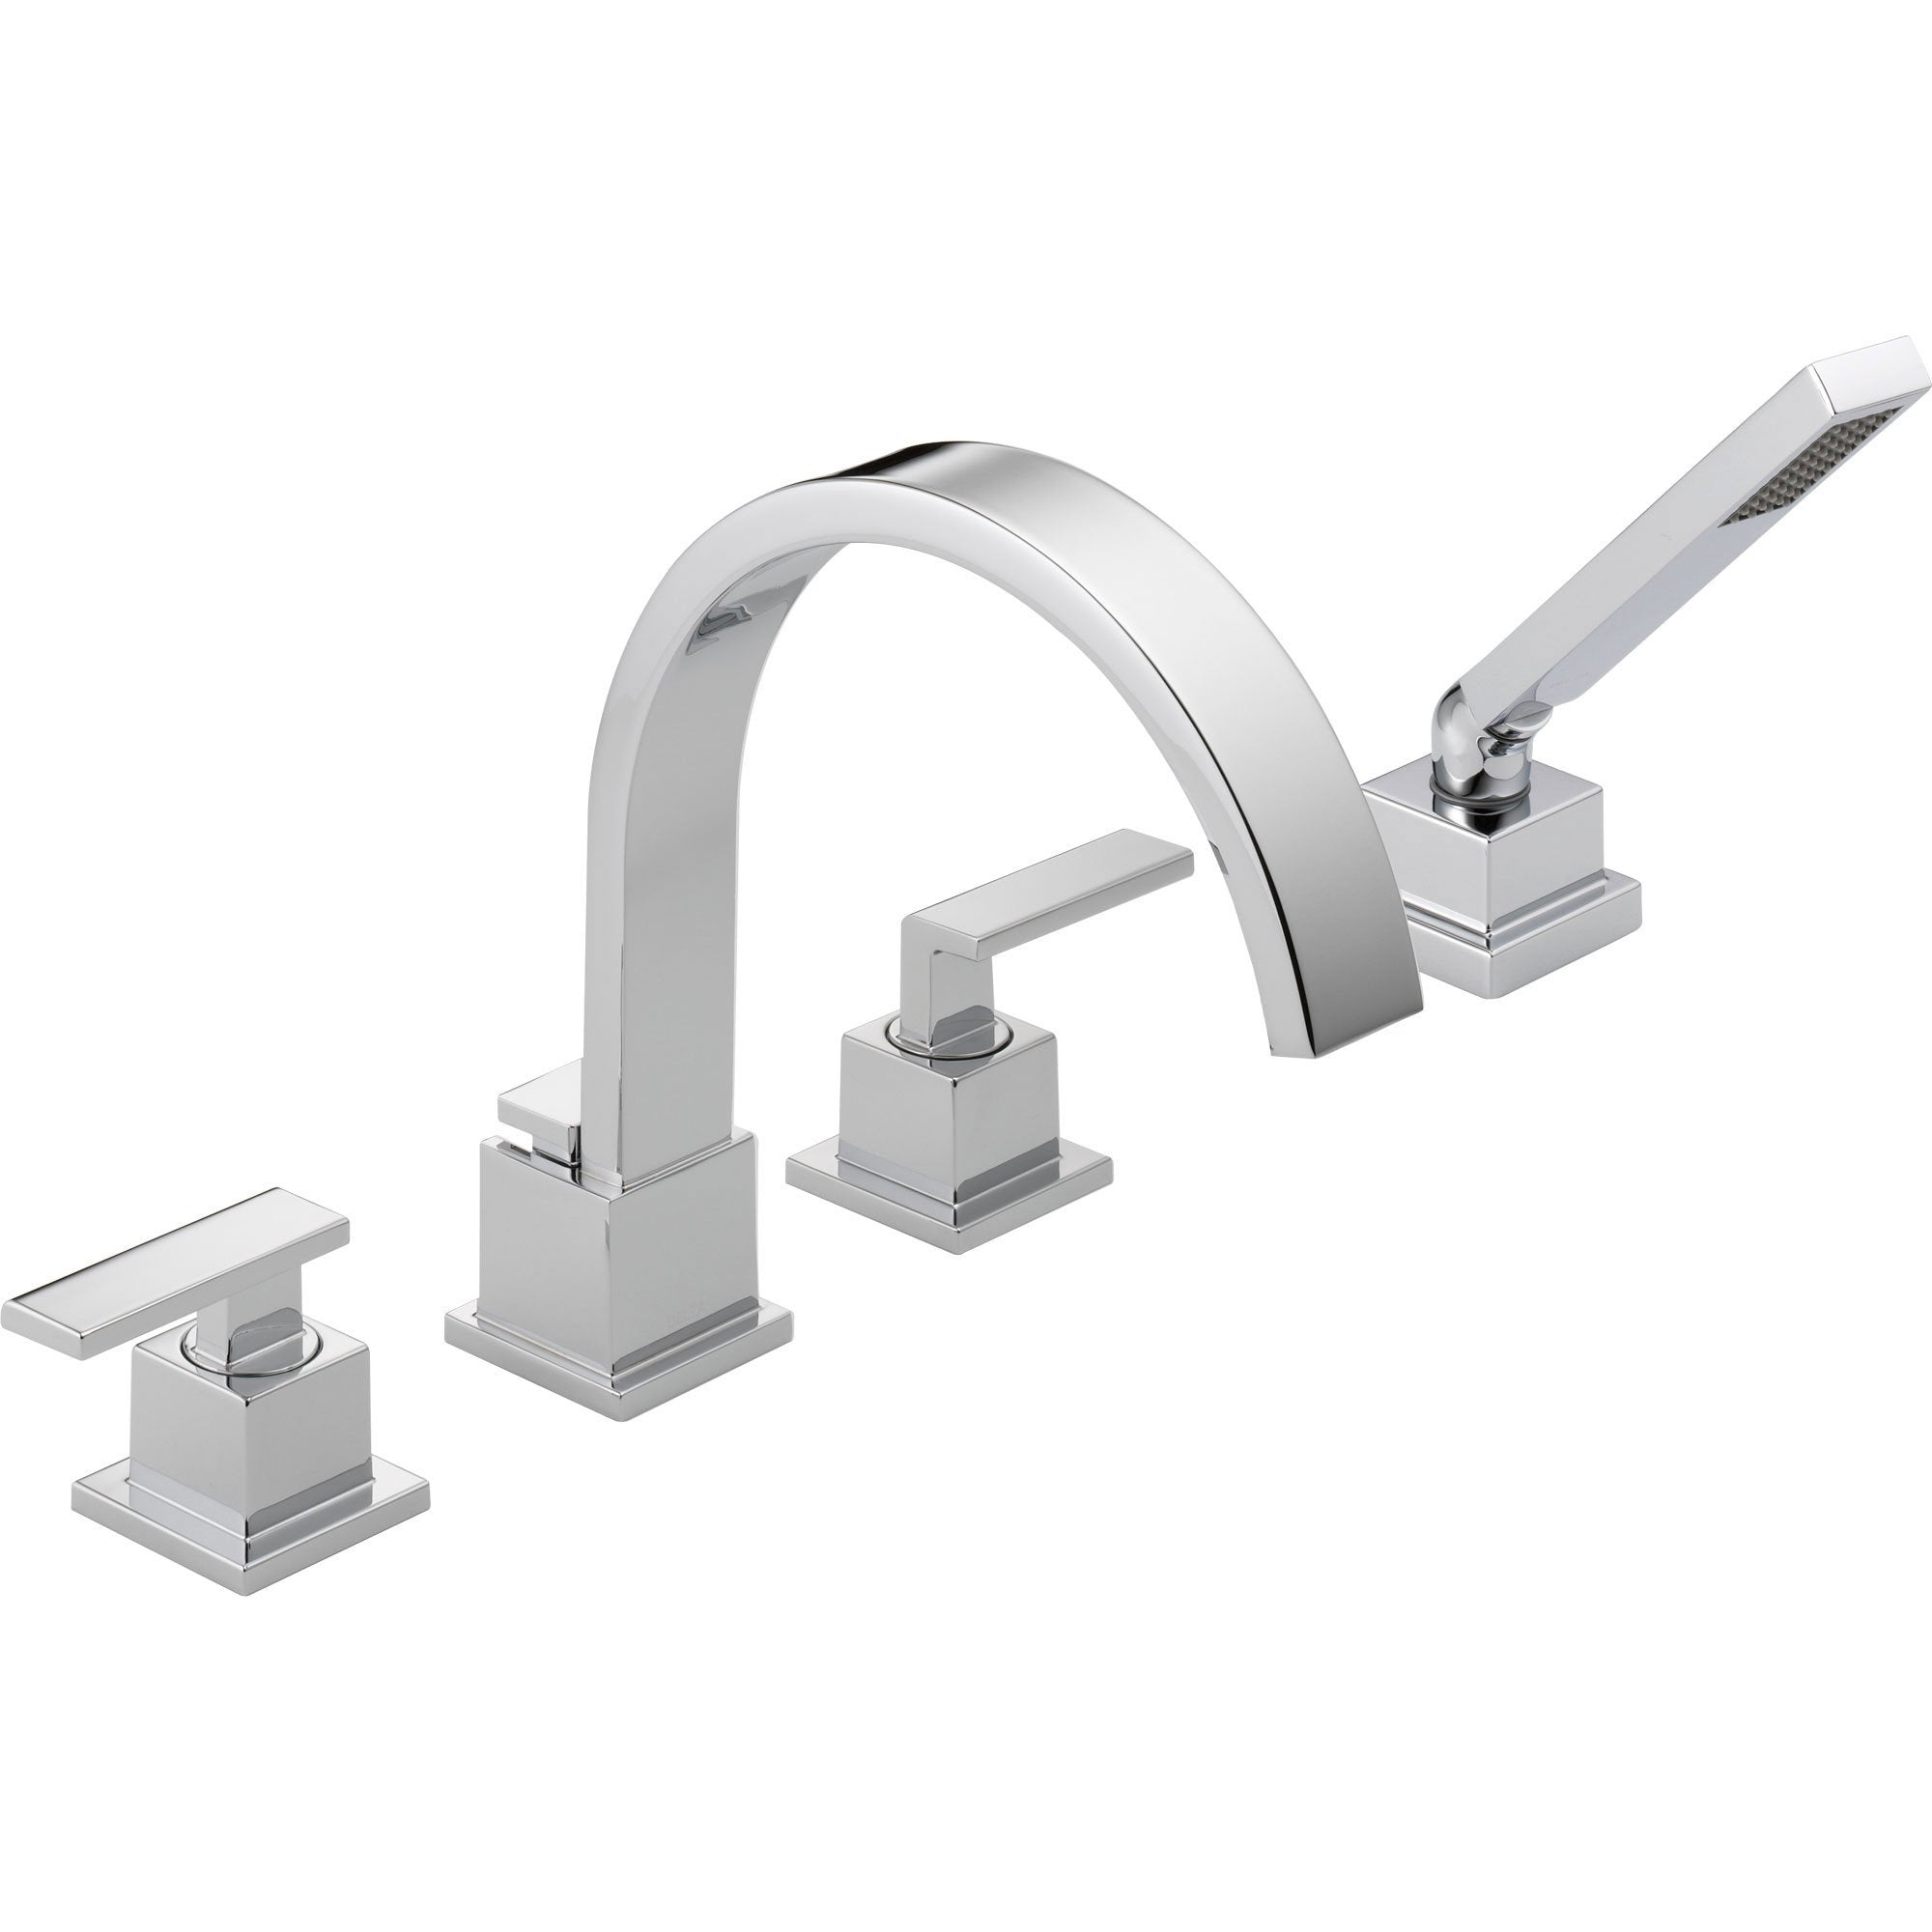 Delta Vero Deck-Mount Chrome Roman Tub Faucet with Valve and Handshower D867V